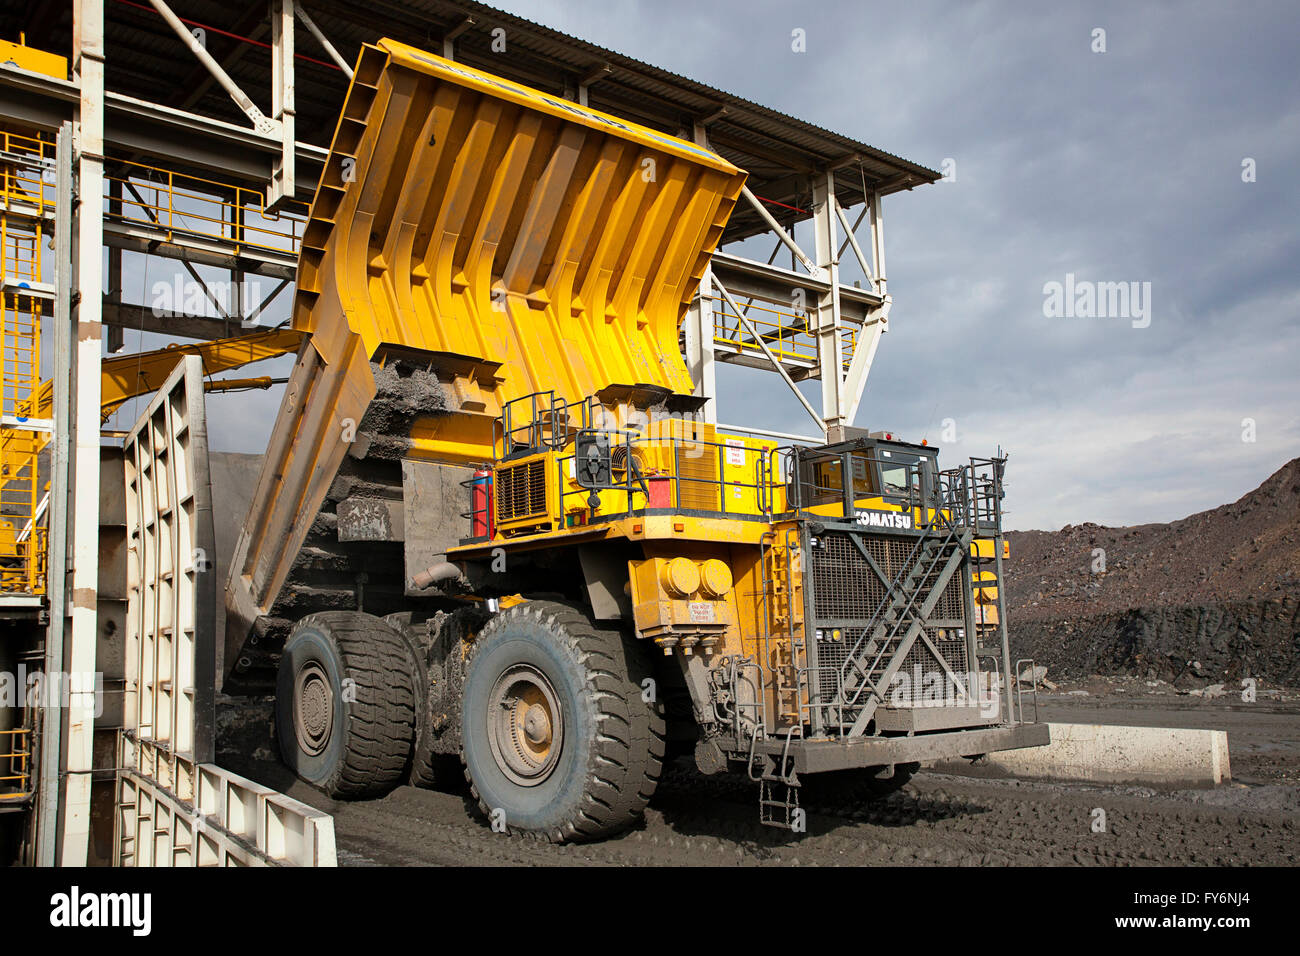 Large dump truck dumping copper ore into giant crusher - Stock Image